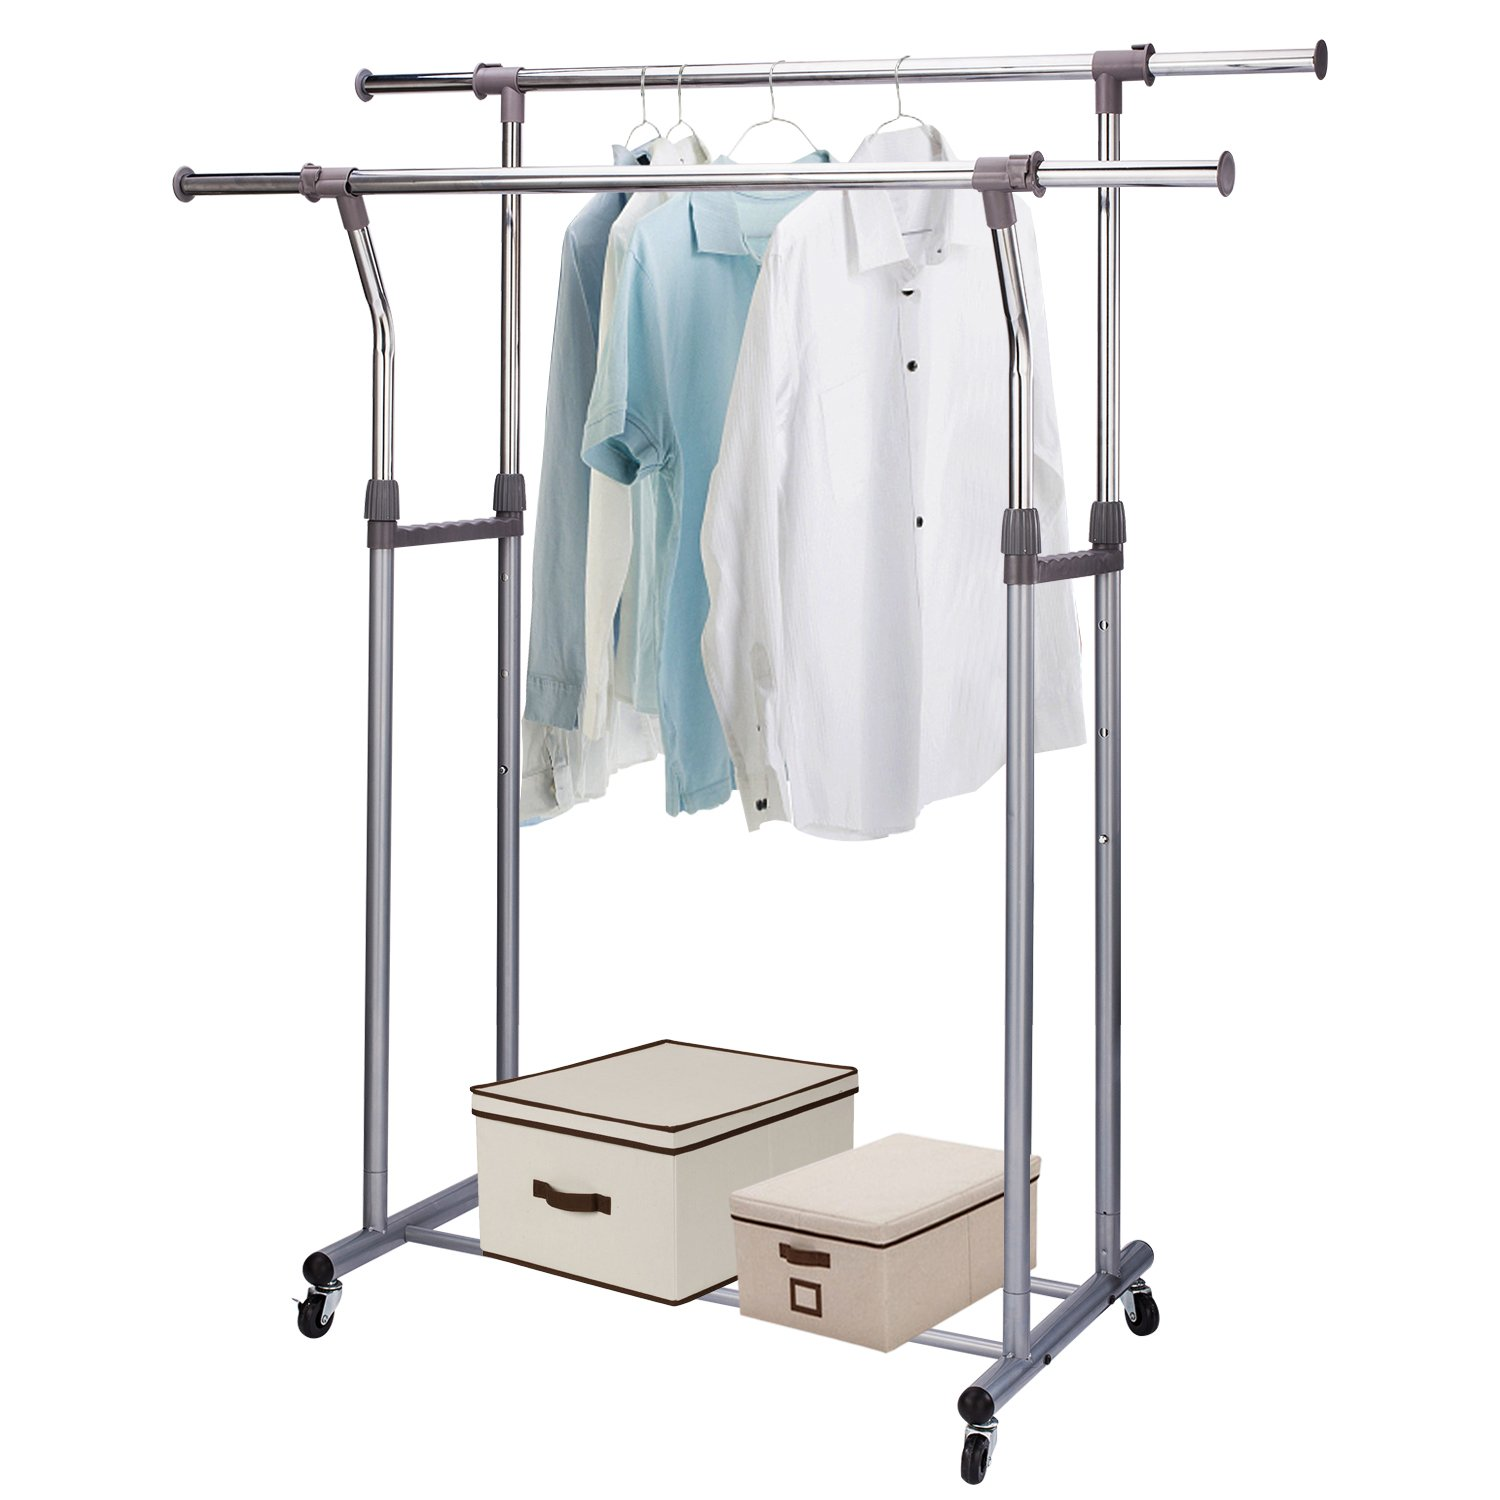 Rukerway Heavy Duty Garment Rack Double Rail Adjustable Clothing Rack Supreme Rolling Rack Laundry Drying Rack, Chrome Finish (Double Rail)